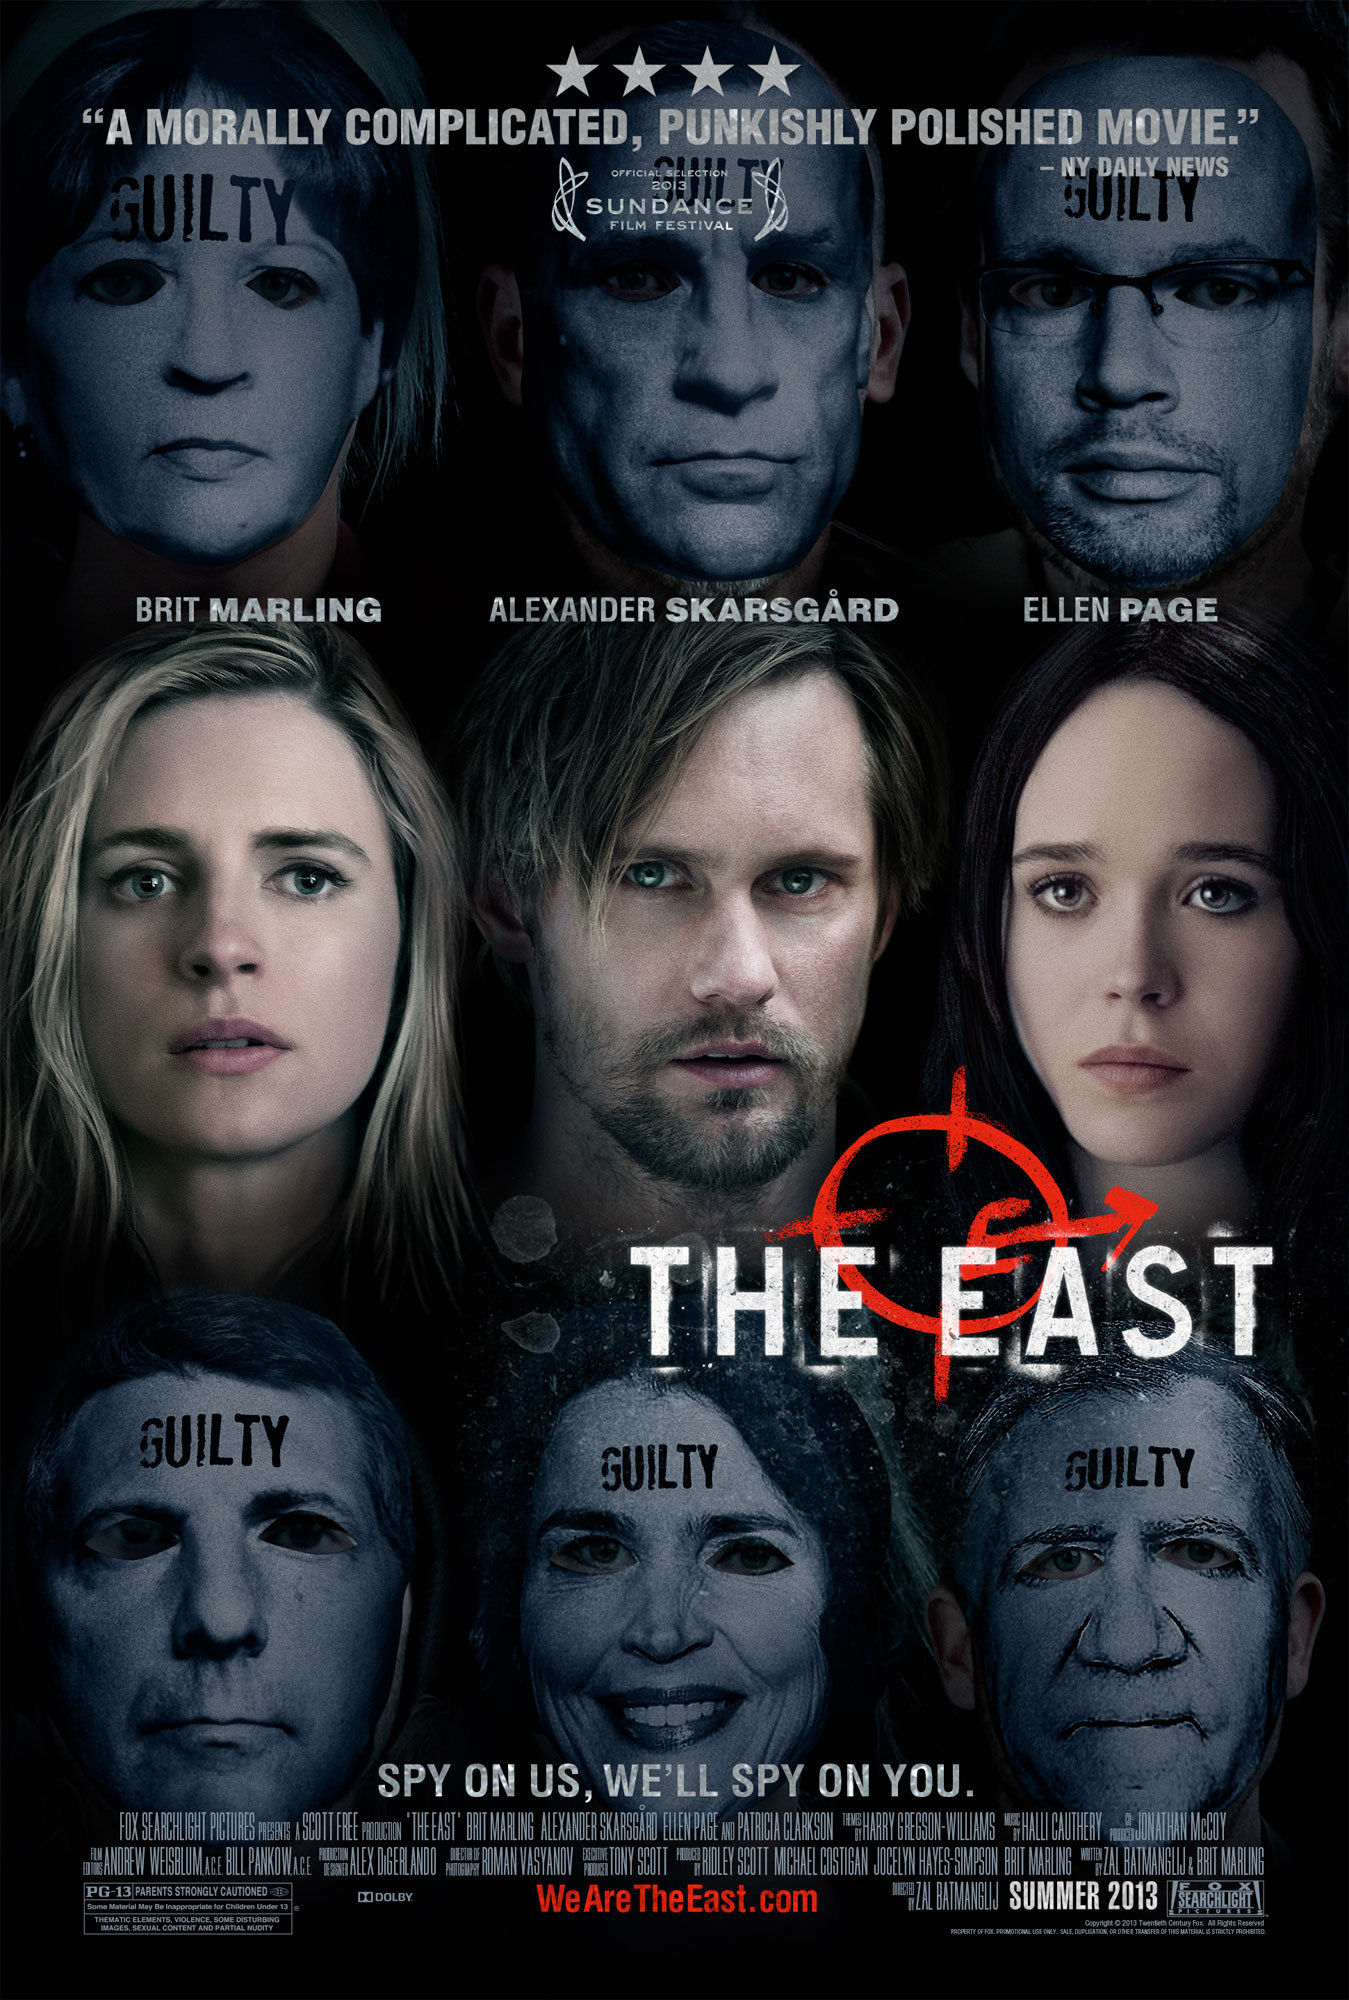 Alexander Skarsgård, Elliot Page, and Brit Marling in The East (2013)